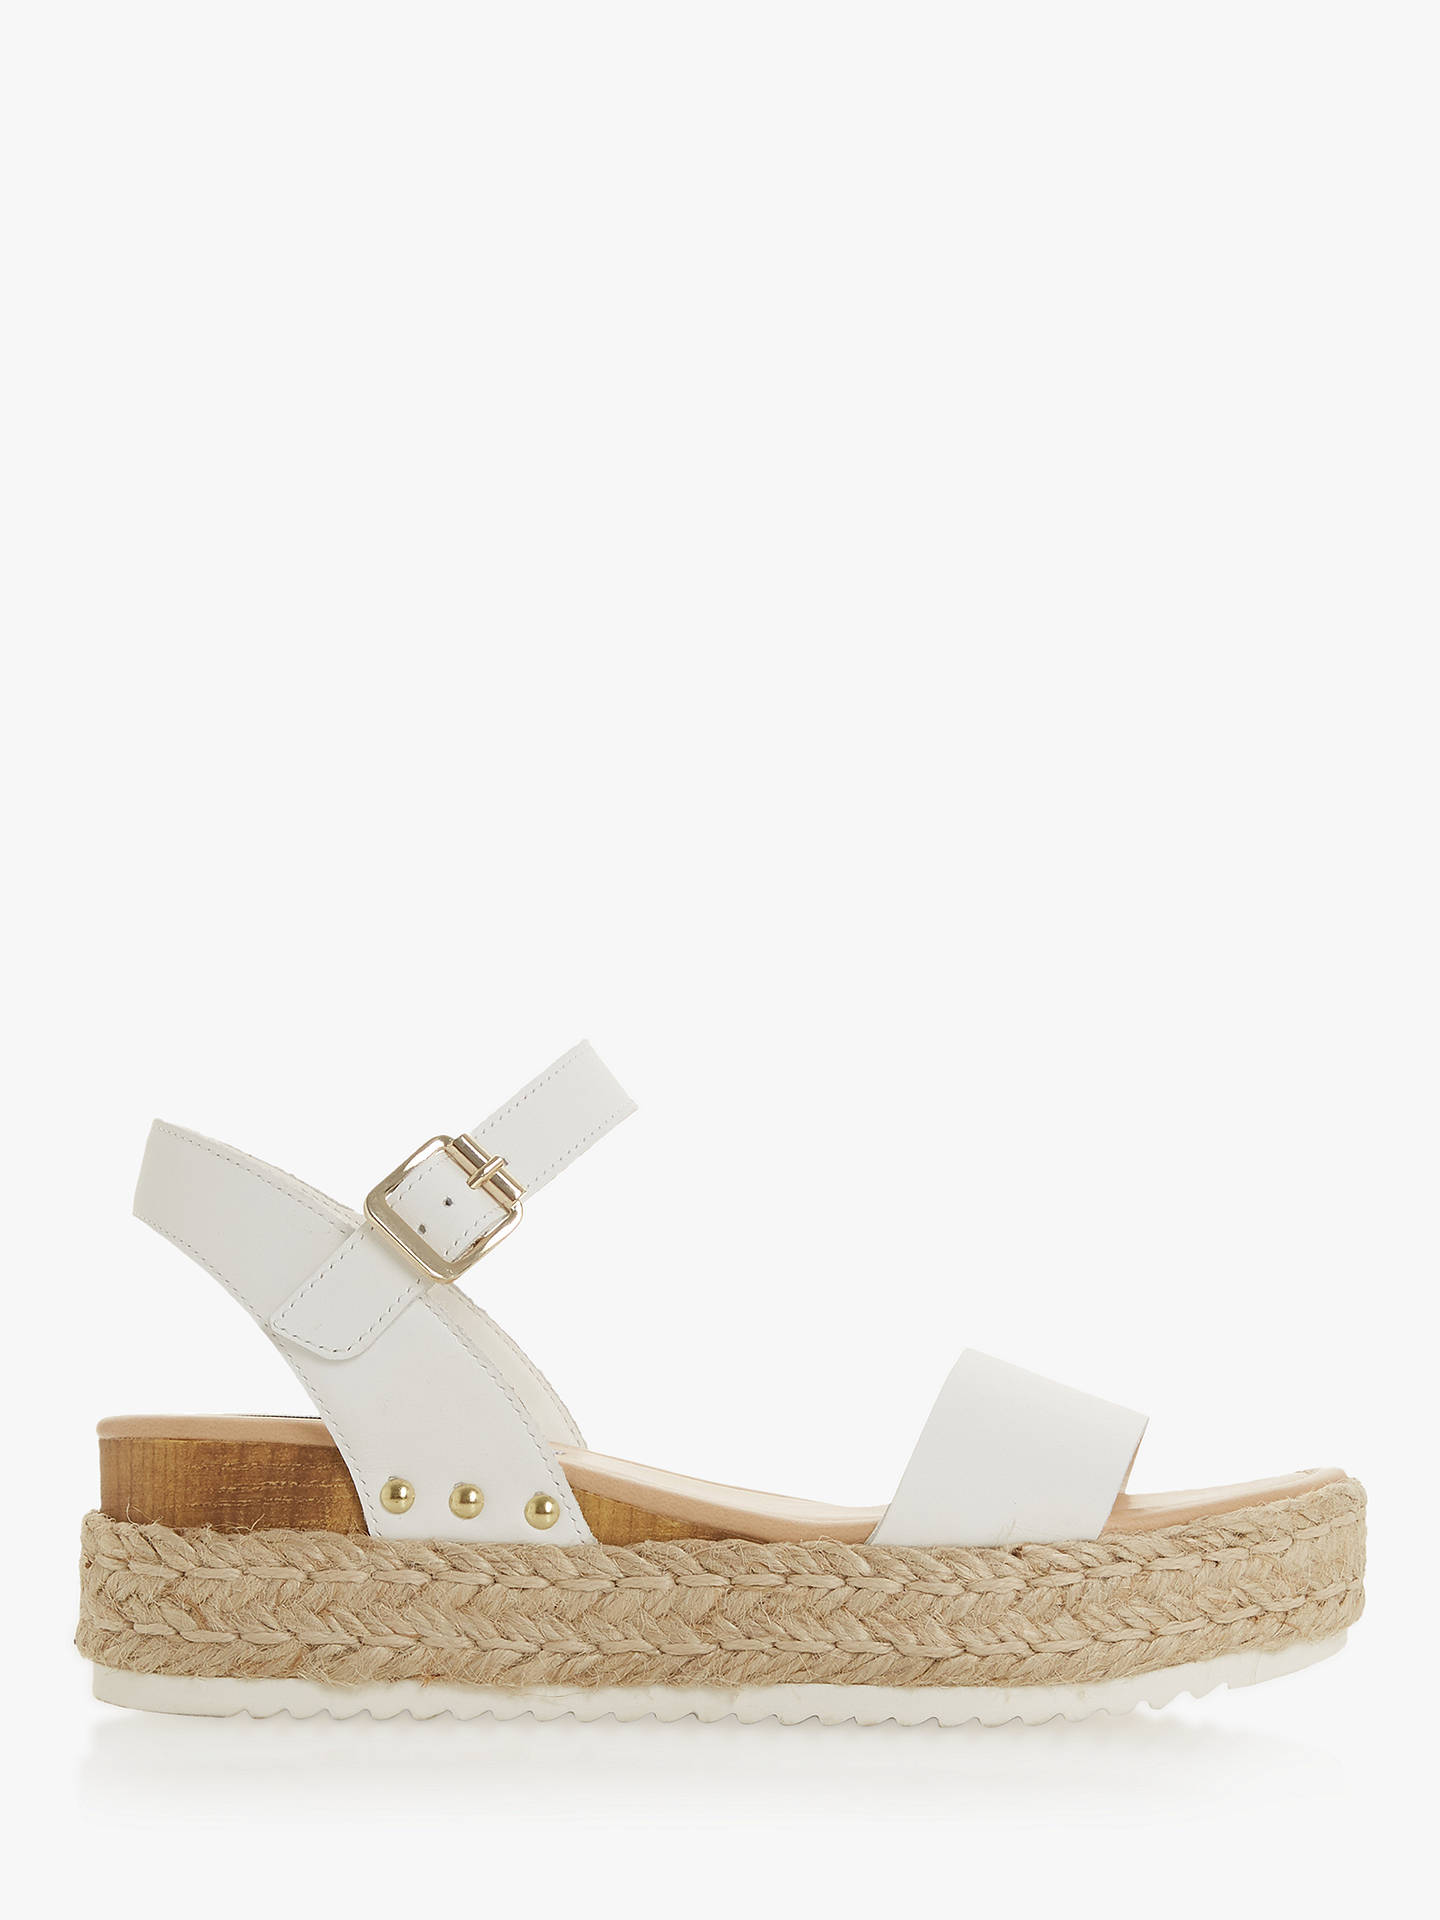 5b9dedce1 Buy Steve Madden Chiara Sandals, White Leather, 3 Online at johnlewis.com  ...